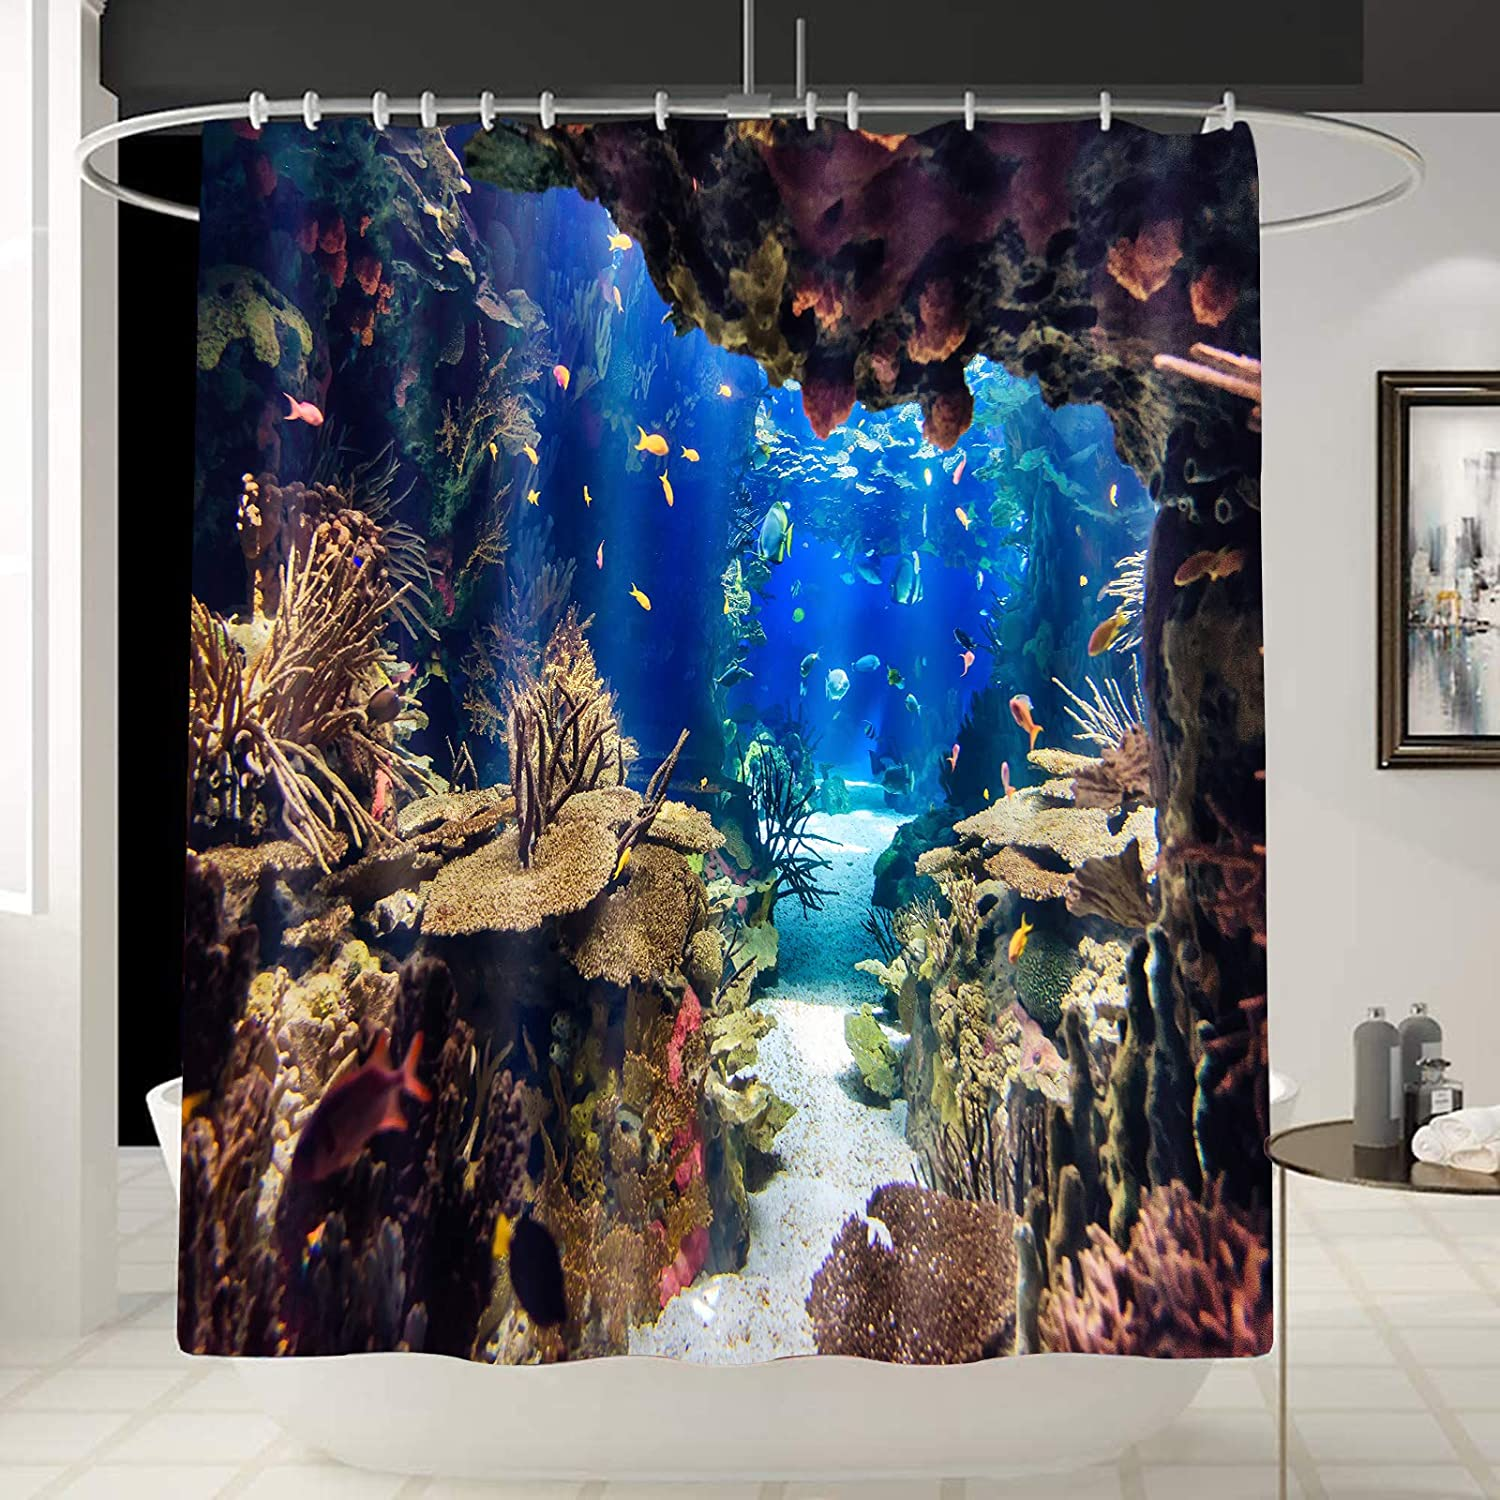 Fishing Theme Decor Underwater World Shower Curtain Liner, Coral Reef Art Tropical Undersea /Aquarium Pattern Curtain for Bathroom/Washroom with 12 Hooks Waterproof,Gift for Man/Girl 70x 70 Inches